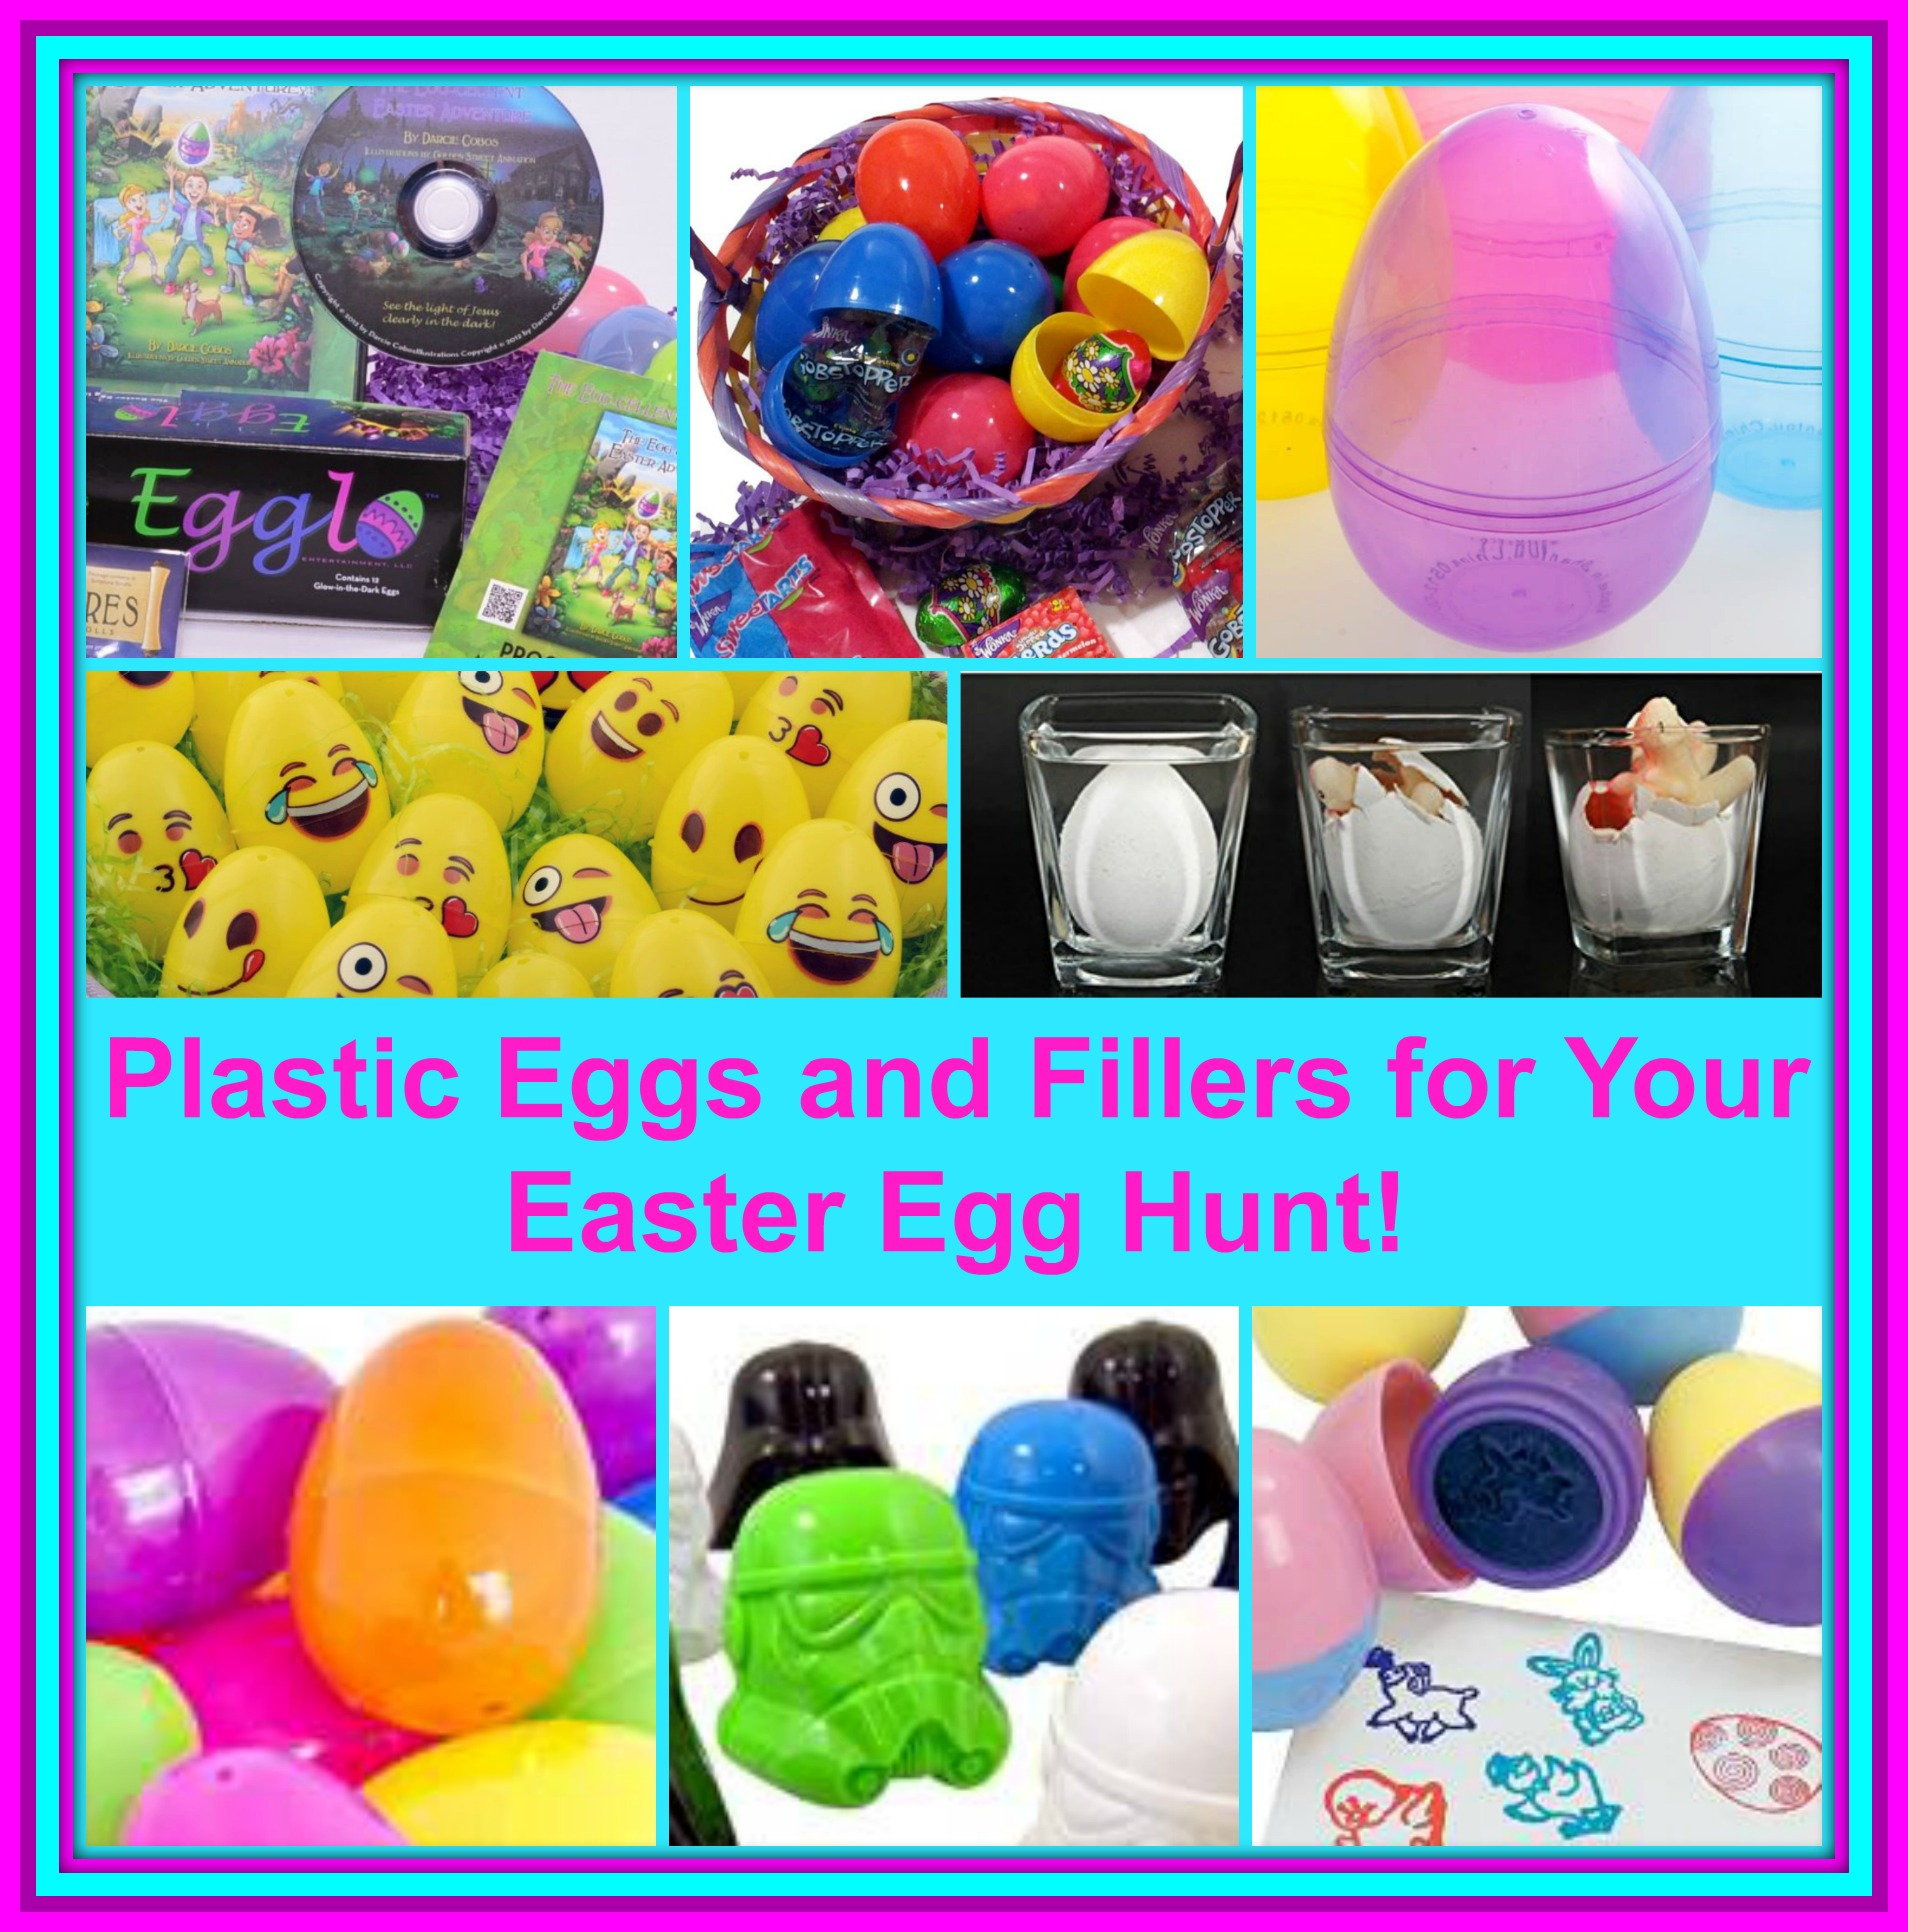 Plastic Eggs And Fillers For Your Easter Egg Hunt!